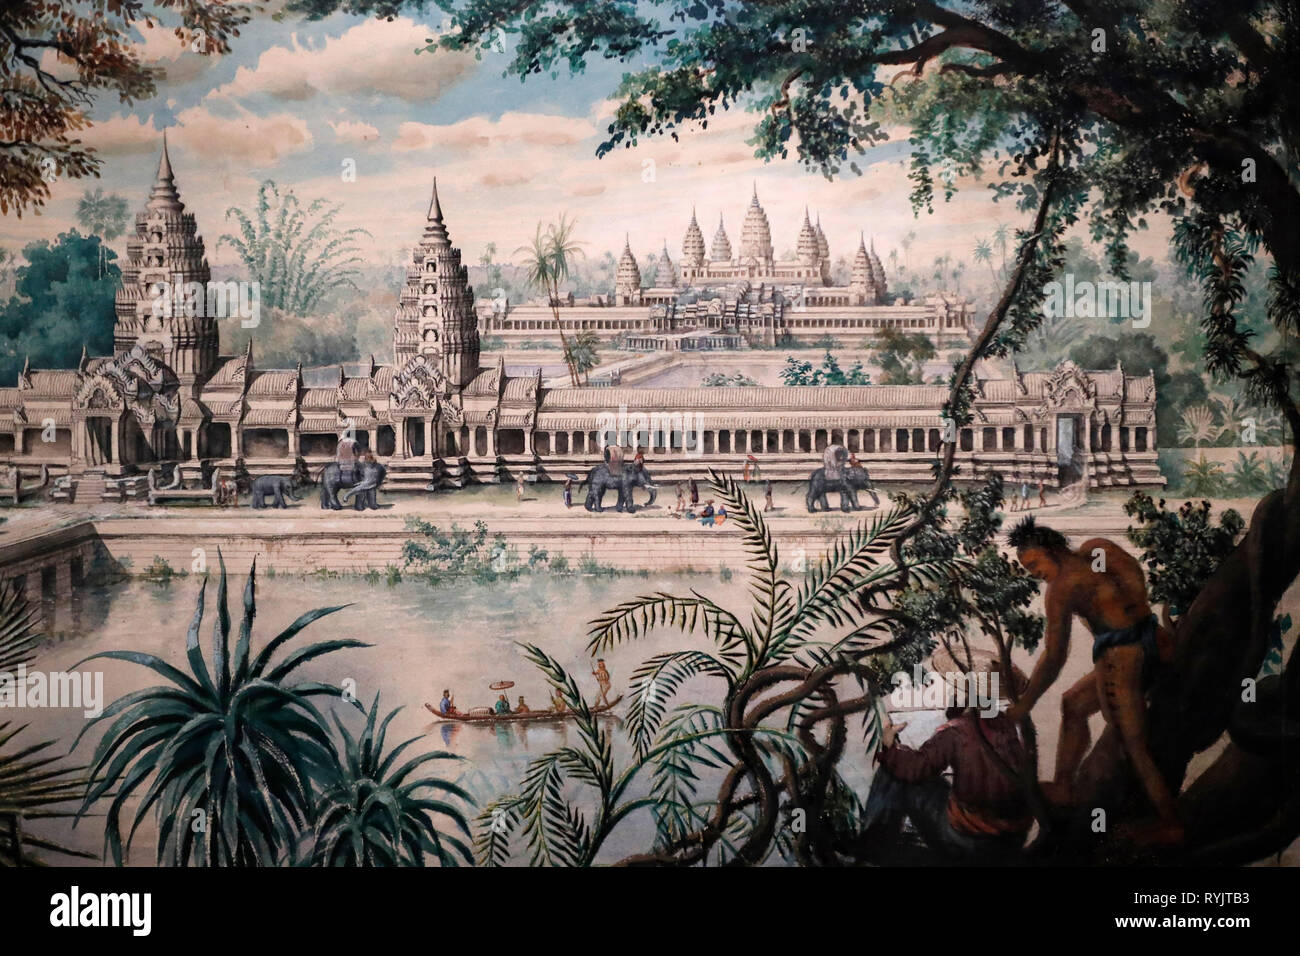 Asian Civilisations Museum. Angkor. Exploring Cambodia's sacred city.   View of Angkor Wat by Louis Delaporte around 1870-73. Singapore. - Stock Image